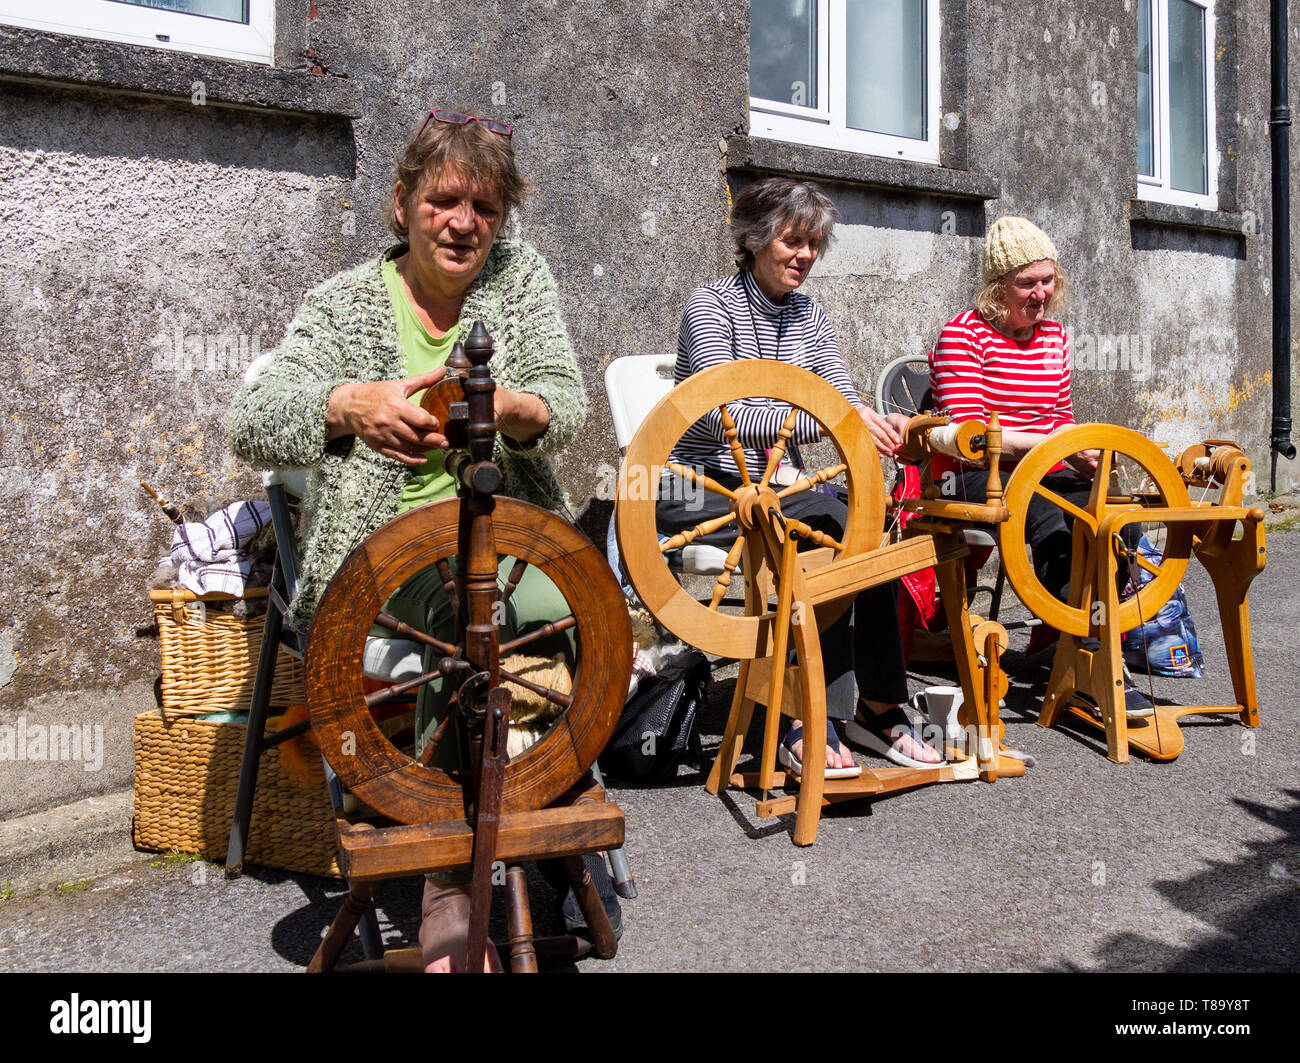 3-women-spinning-wool-outdoors-on-wooden-spinning-wheels-skibbereen-ireland-T89Y8T.jpg